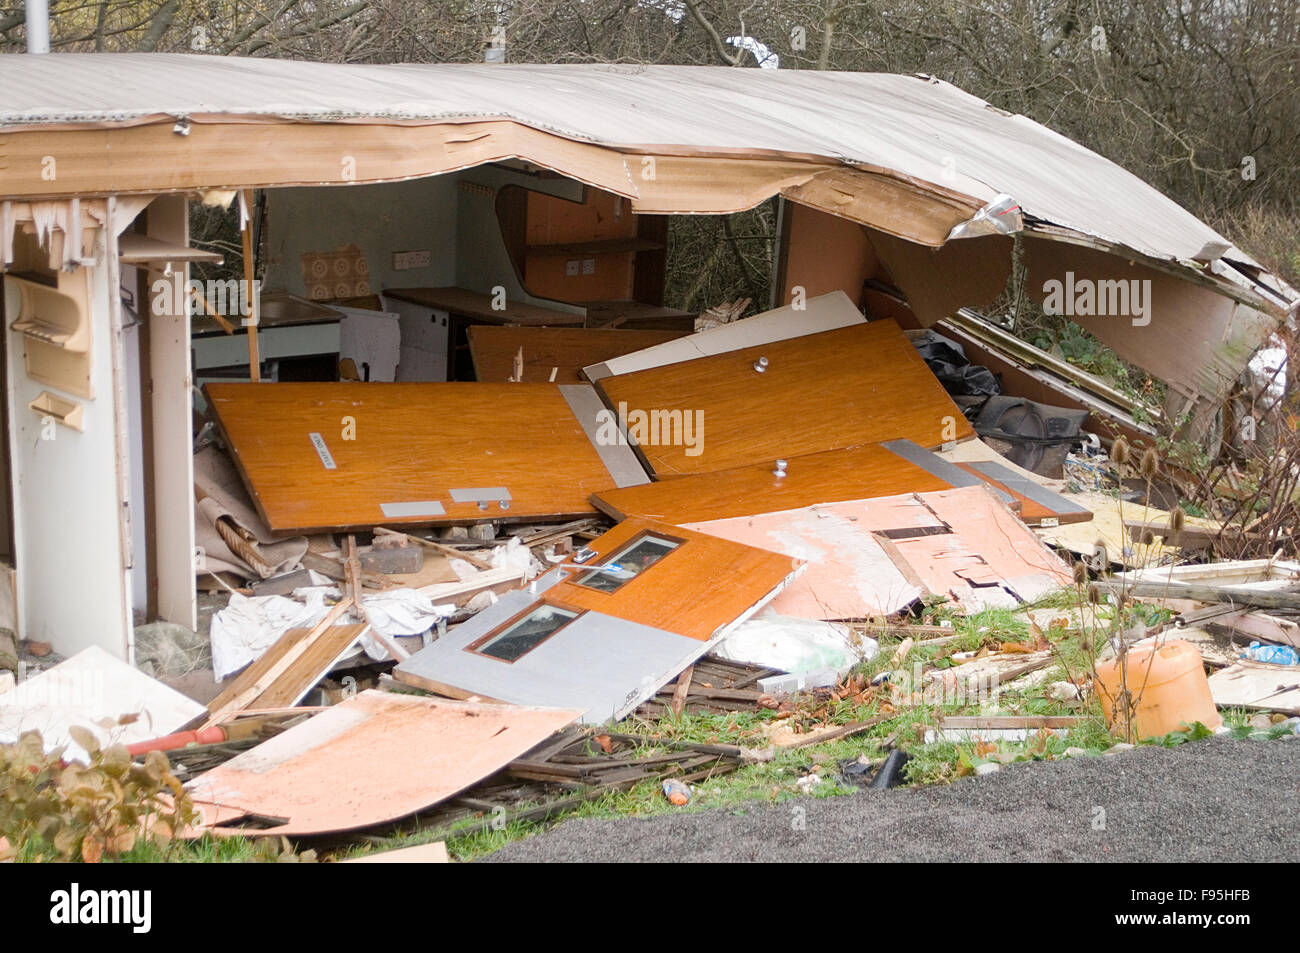 Smashed Up Mobile Home Homes Caravan Caravans Destroyed Wrecked Bad  Accommodation Holiday Rental Unfit Shabby Site Sites Quality